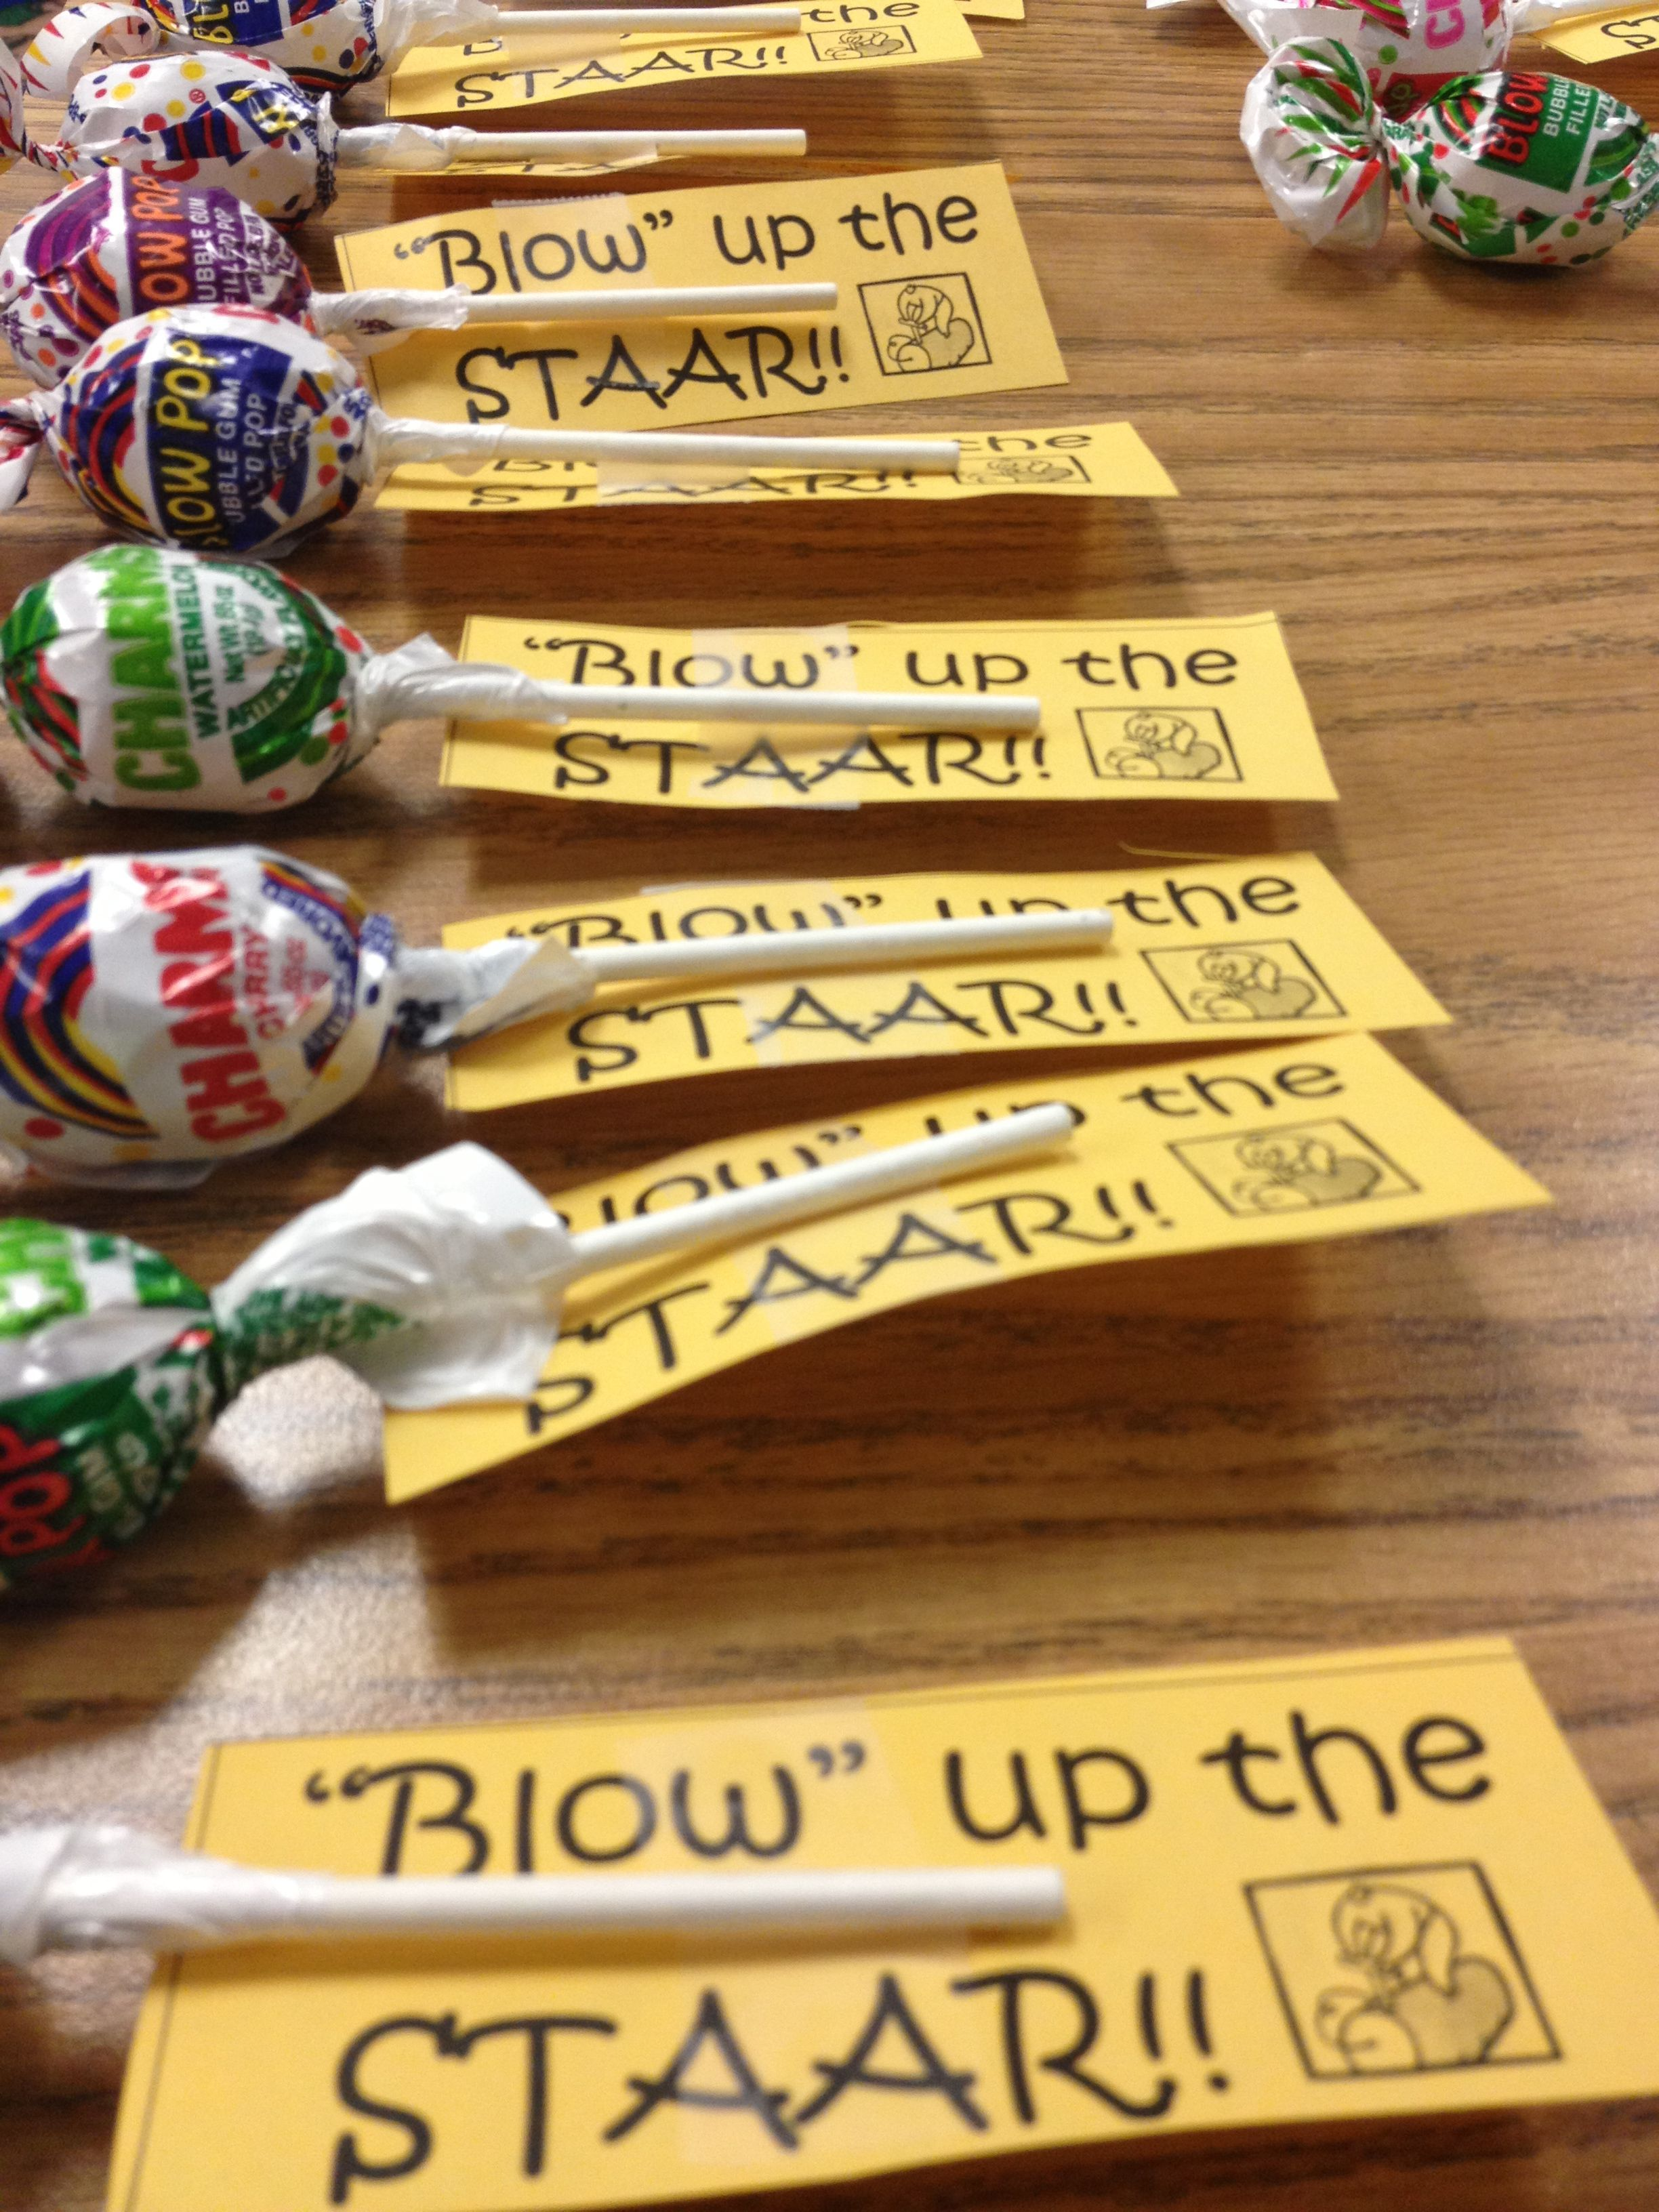 Testing quotes for elementary students - Treat Bags For Students Blow Up The Staar